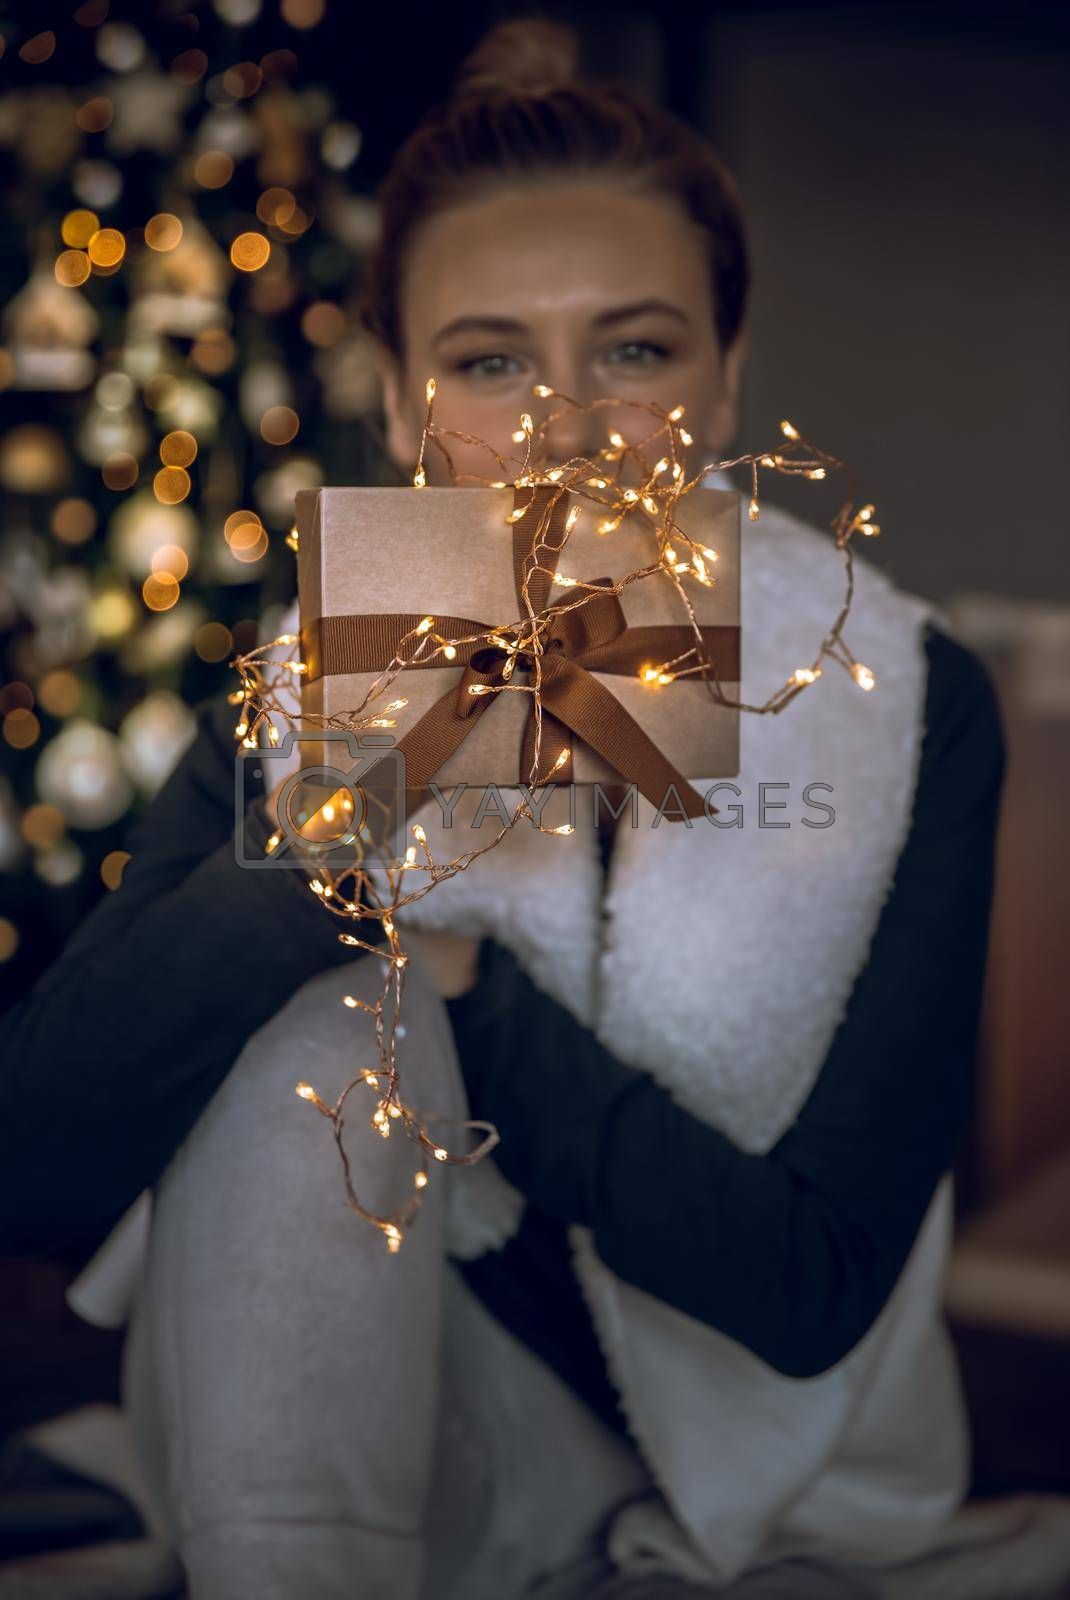 Pretty Girl with Pleasure Receiving Festive Gift. Stylish Golden Gift Box Decorated with Glowing Garland Light. Hygge Christmas Mood at Home. Preparing and Celebrating Winter Holidays. Merry Christmas and Happy New Year